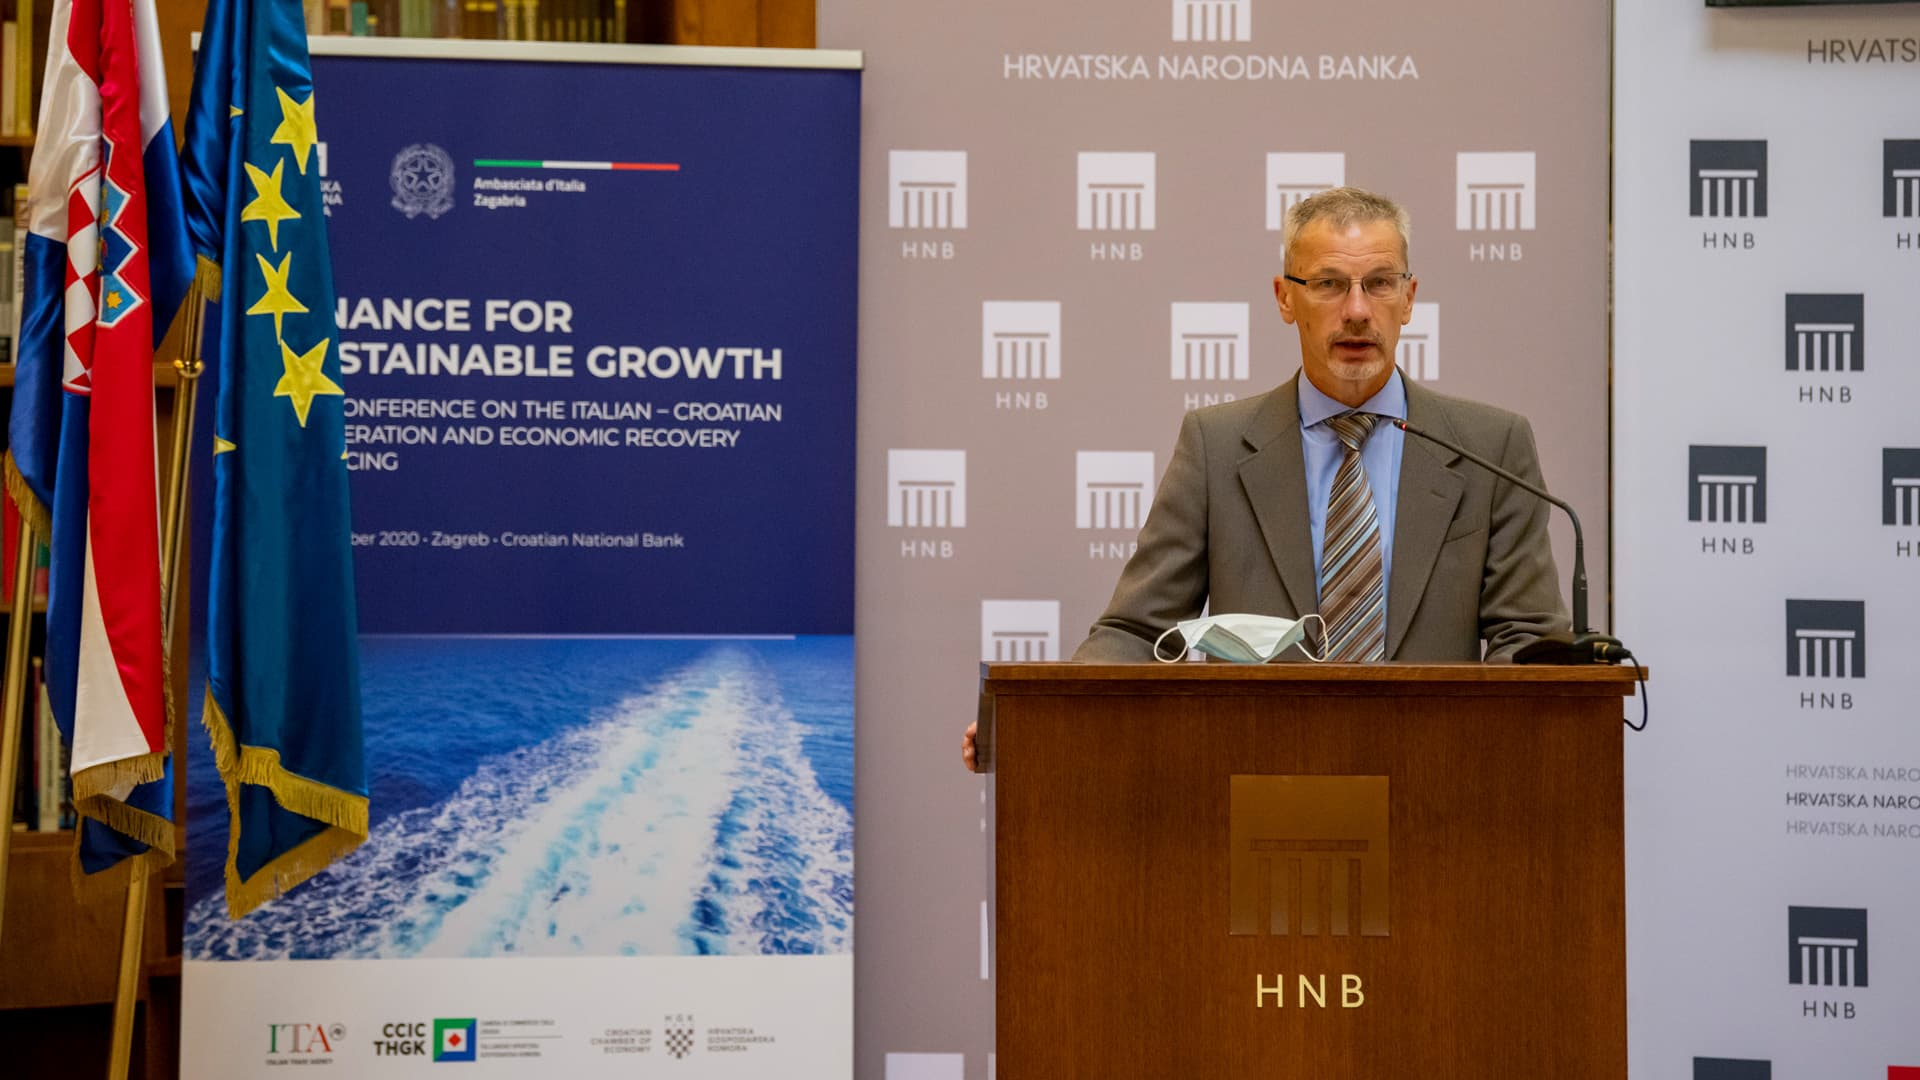 Finance for Sustainable Growth – the conference on the Italian-Croatian cooperation and economic recovery financing